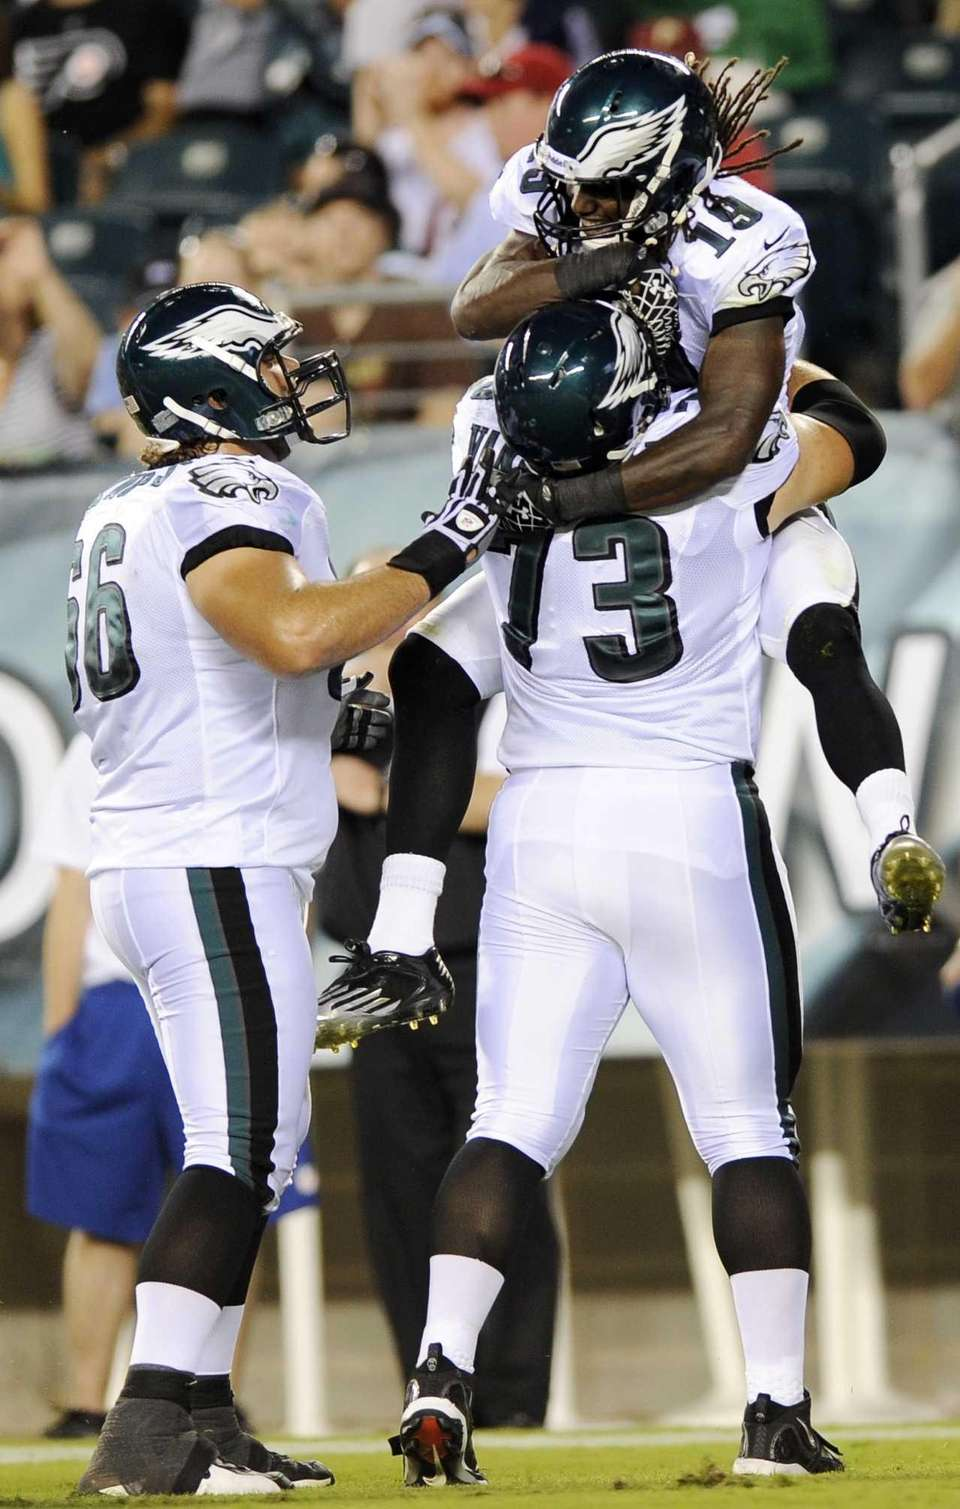 Philadelphia Eagles wide receiver Mardy Gilyard celebrates with